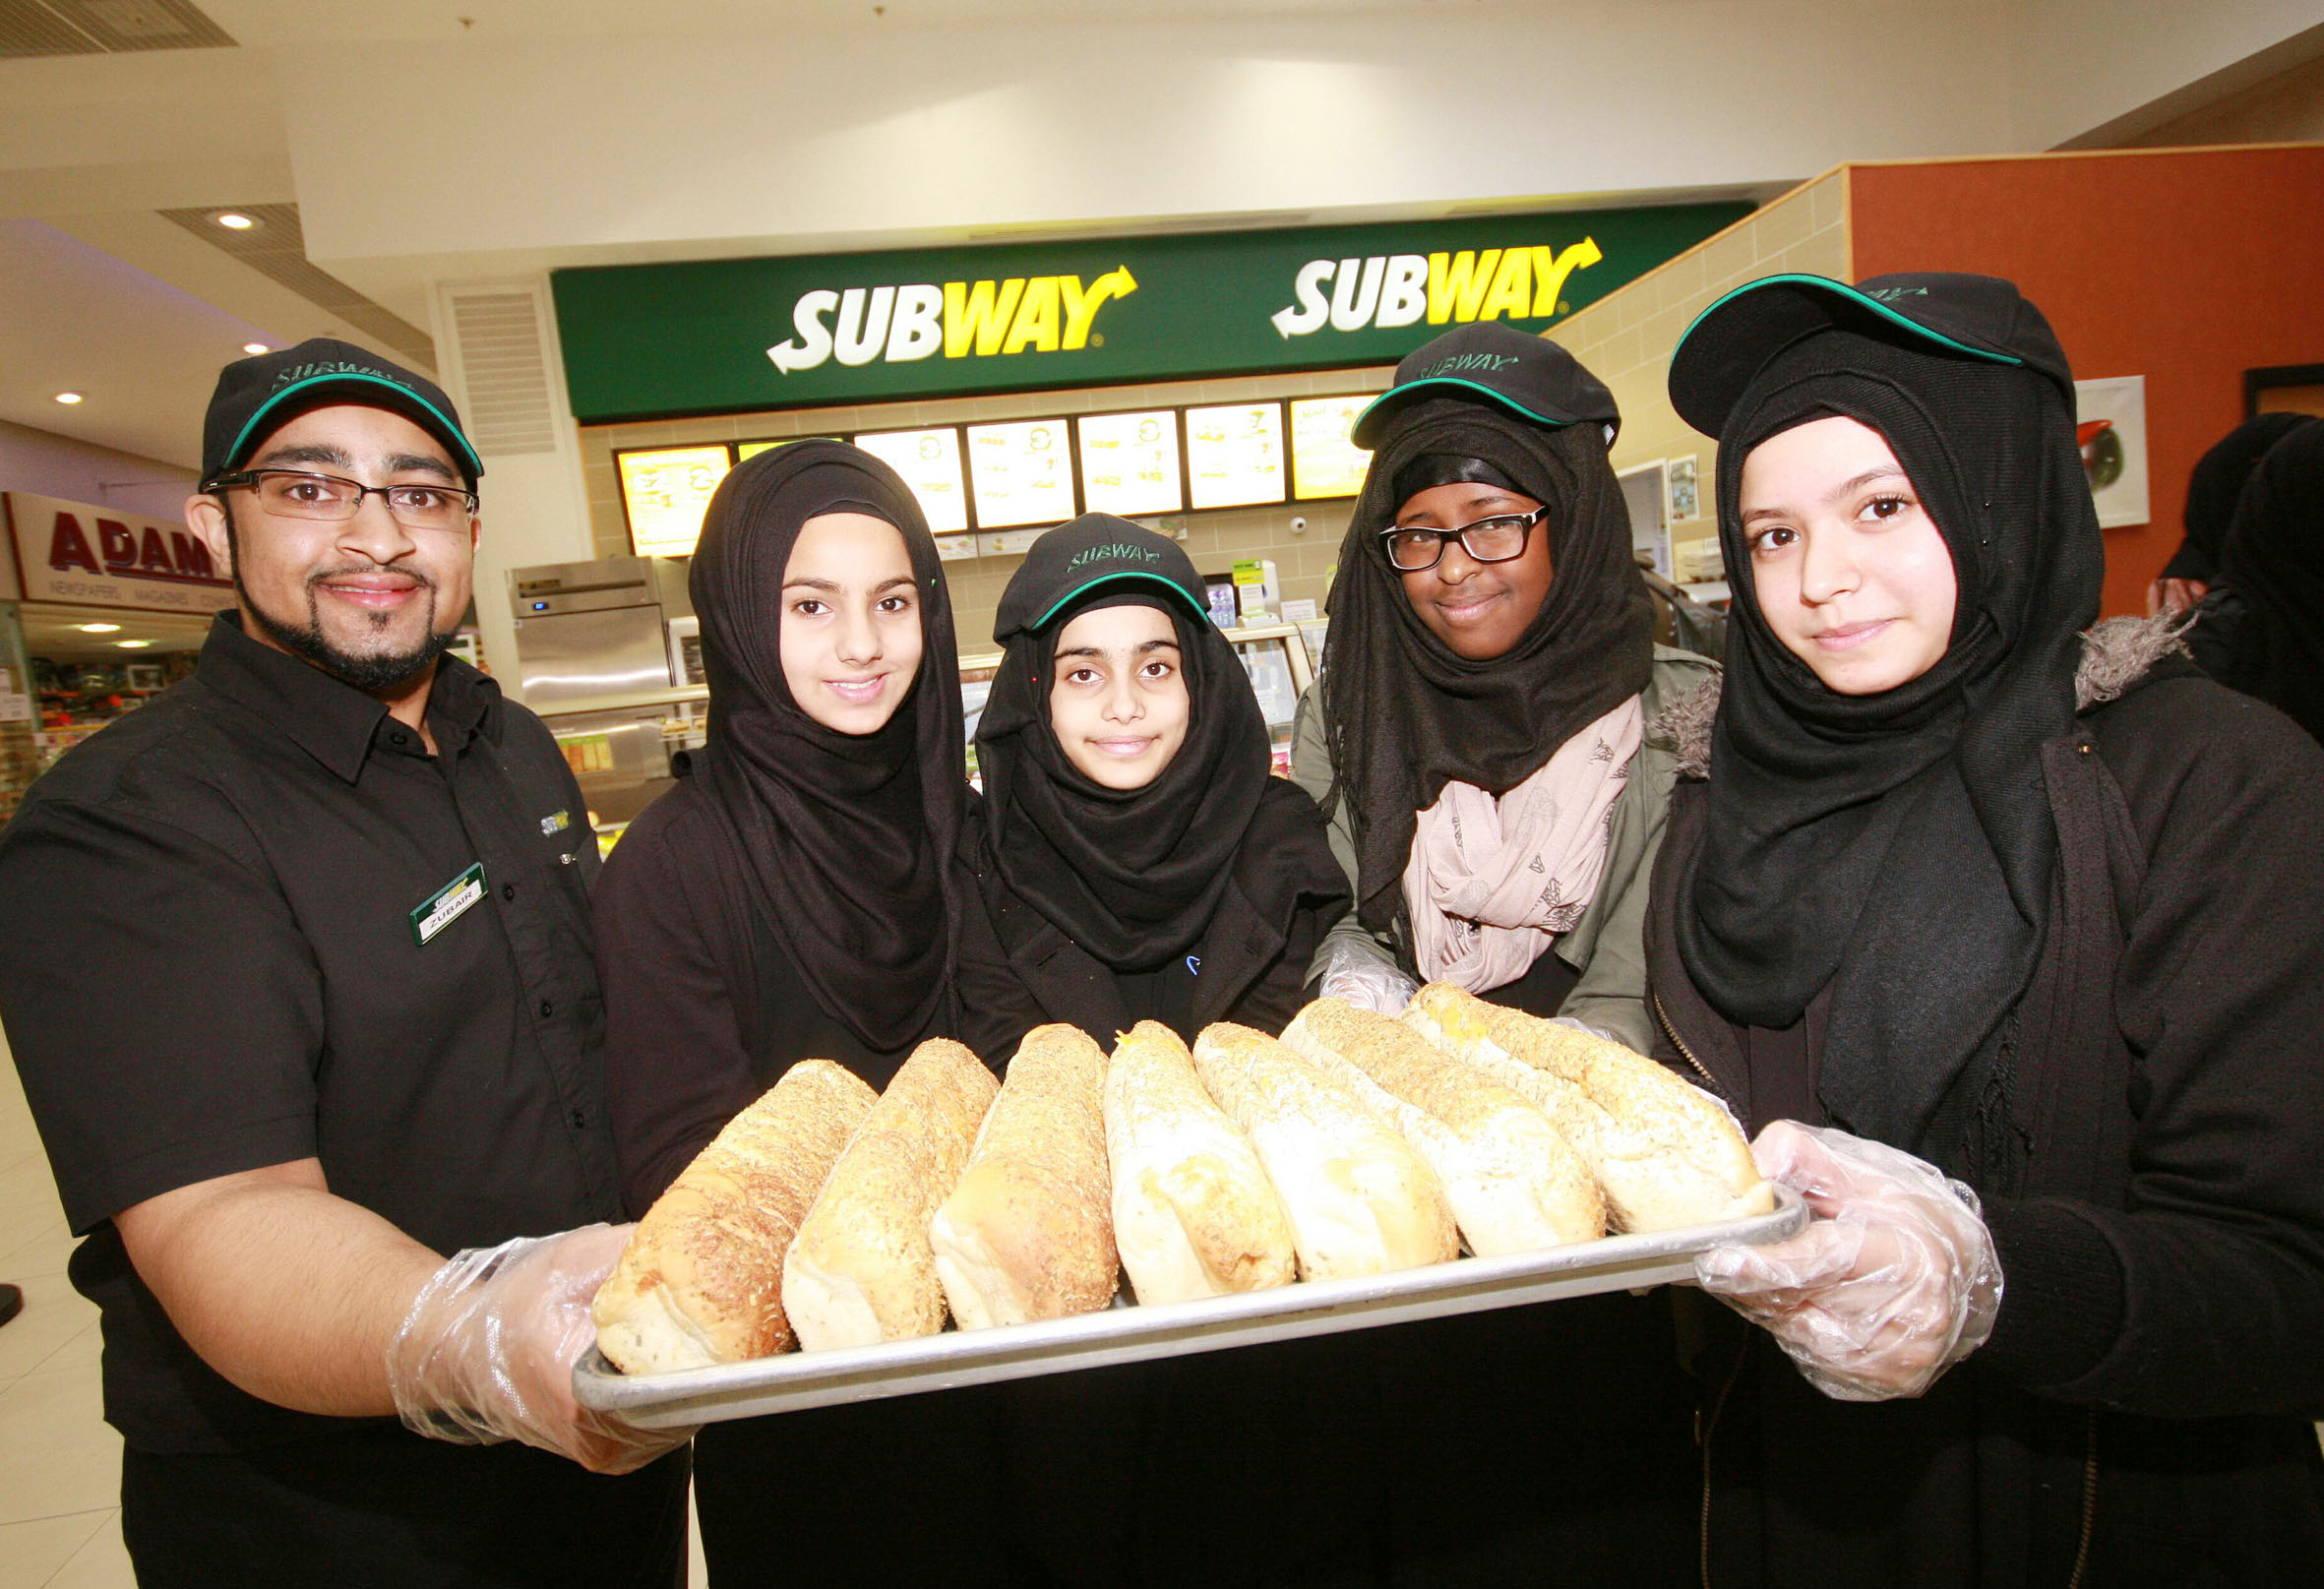 Schoolchildren get lessons in how to make fast food at Subway